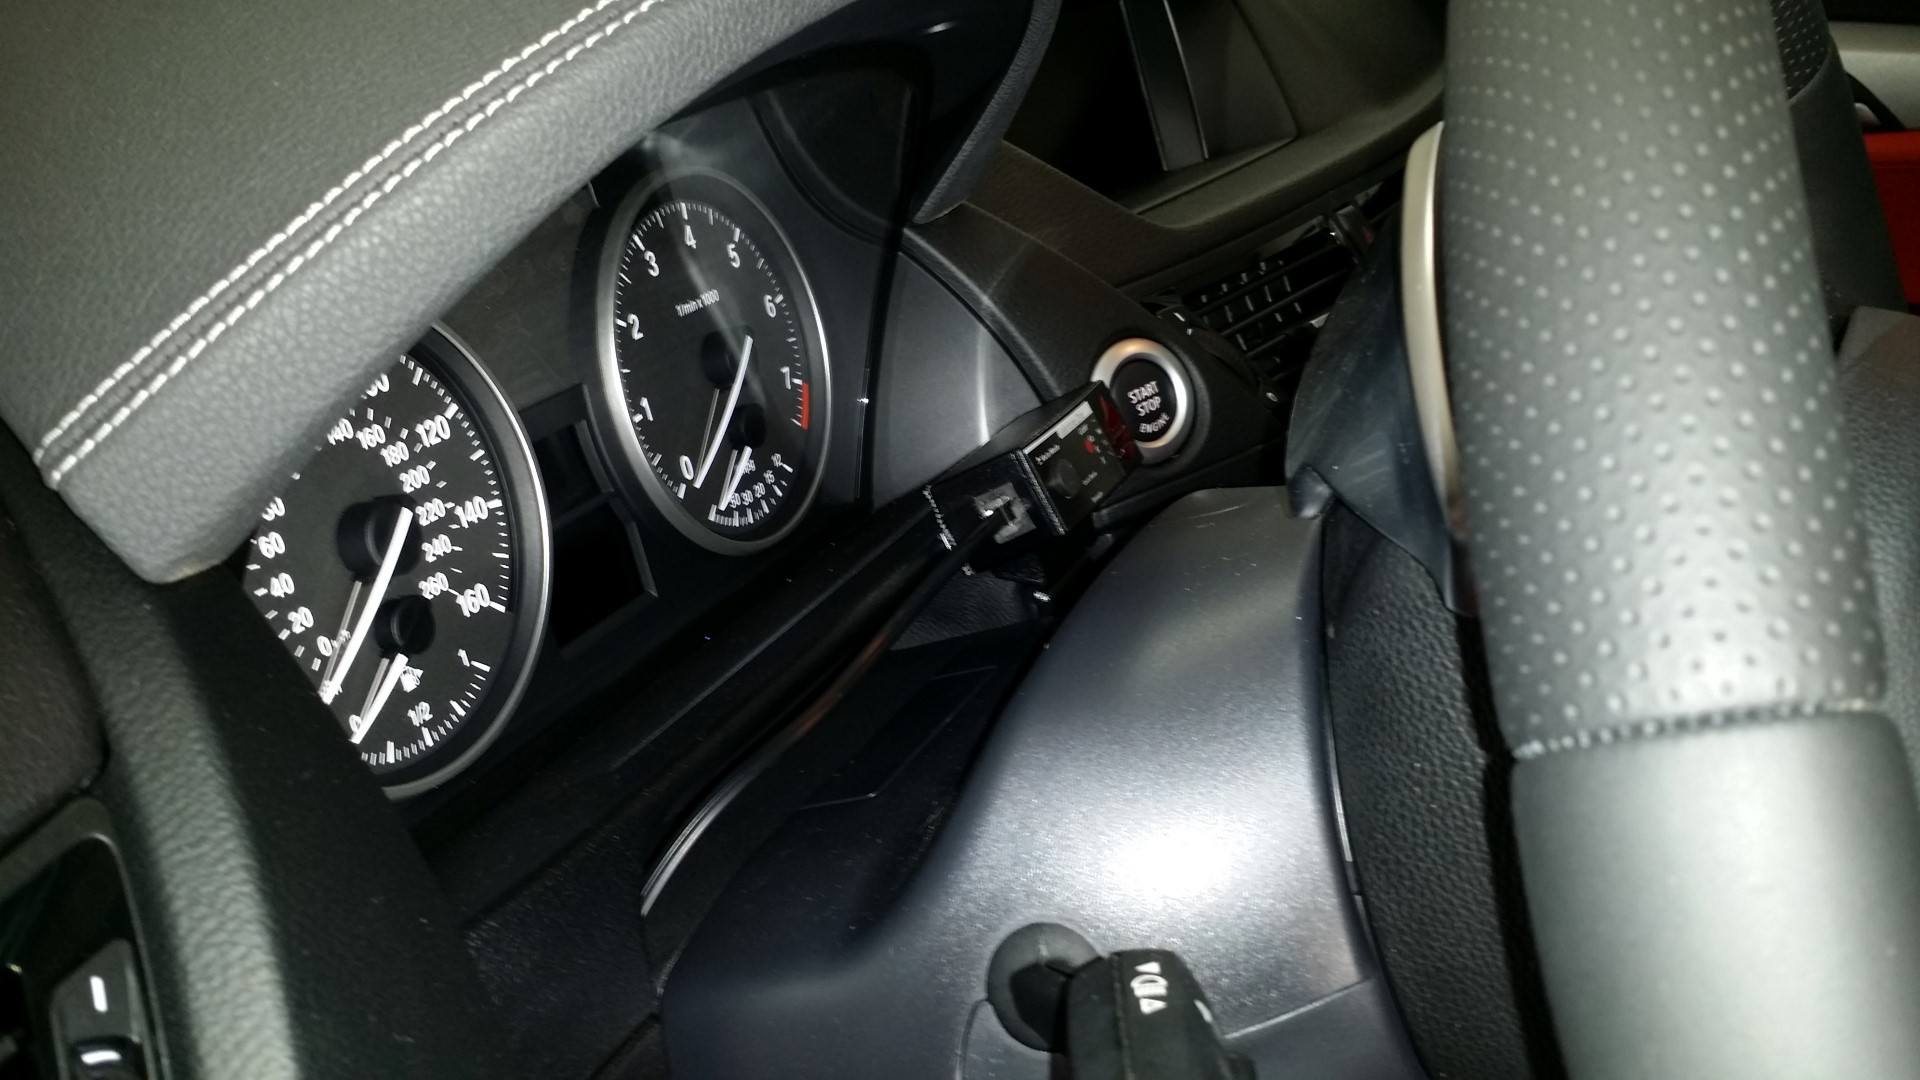 switched 12v circuit in the fuse panel for radar detectors gps etc